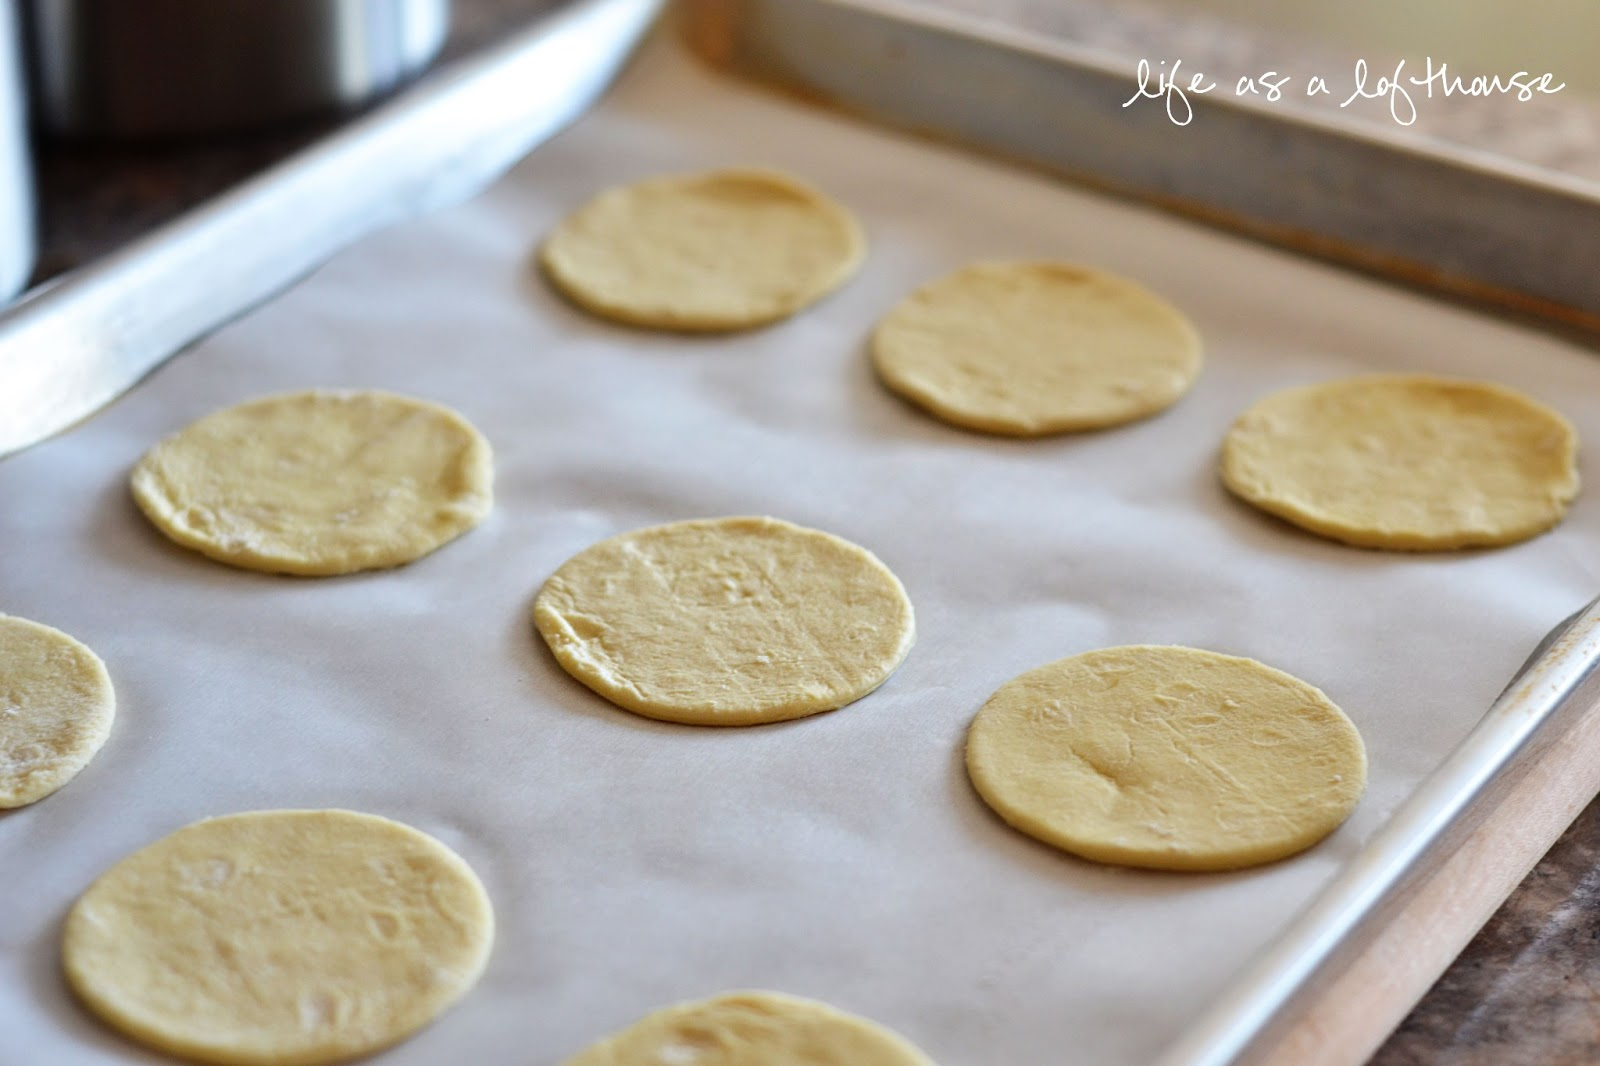 Bake for 15-20 minutes, or until the pastry is golden brown. Serve ...